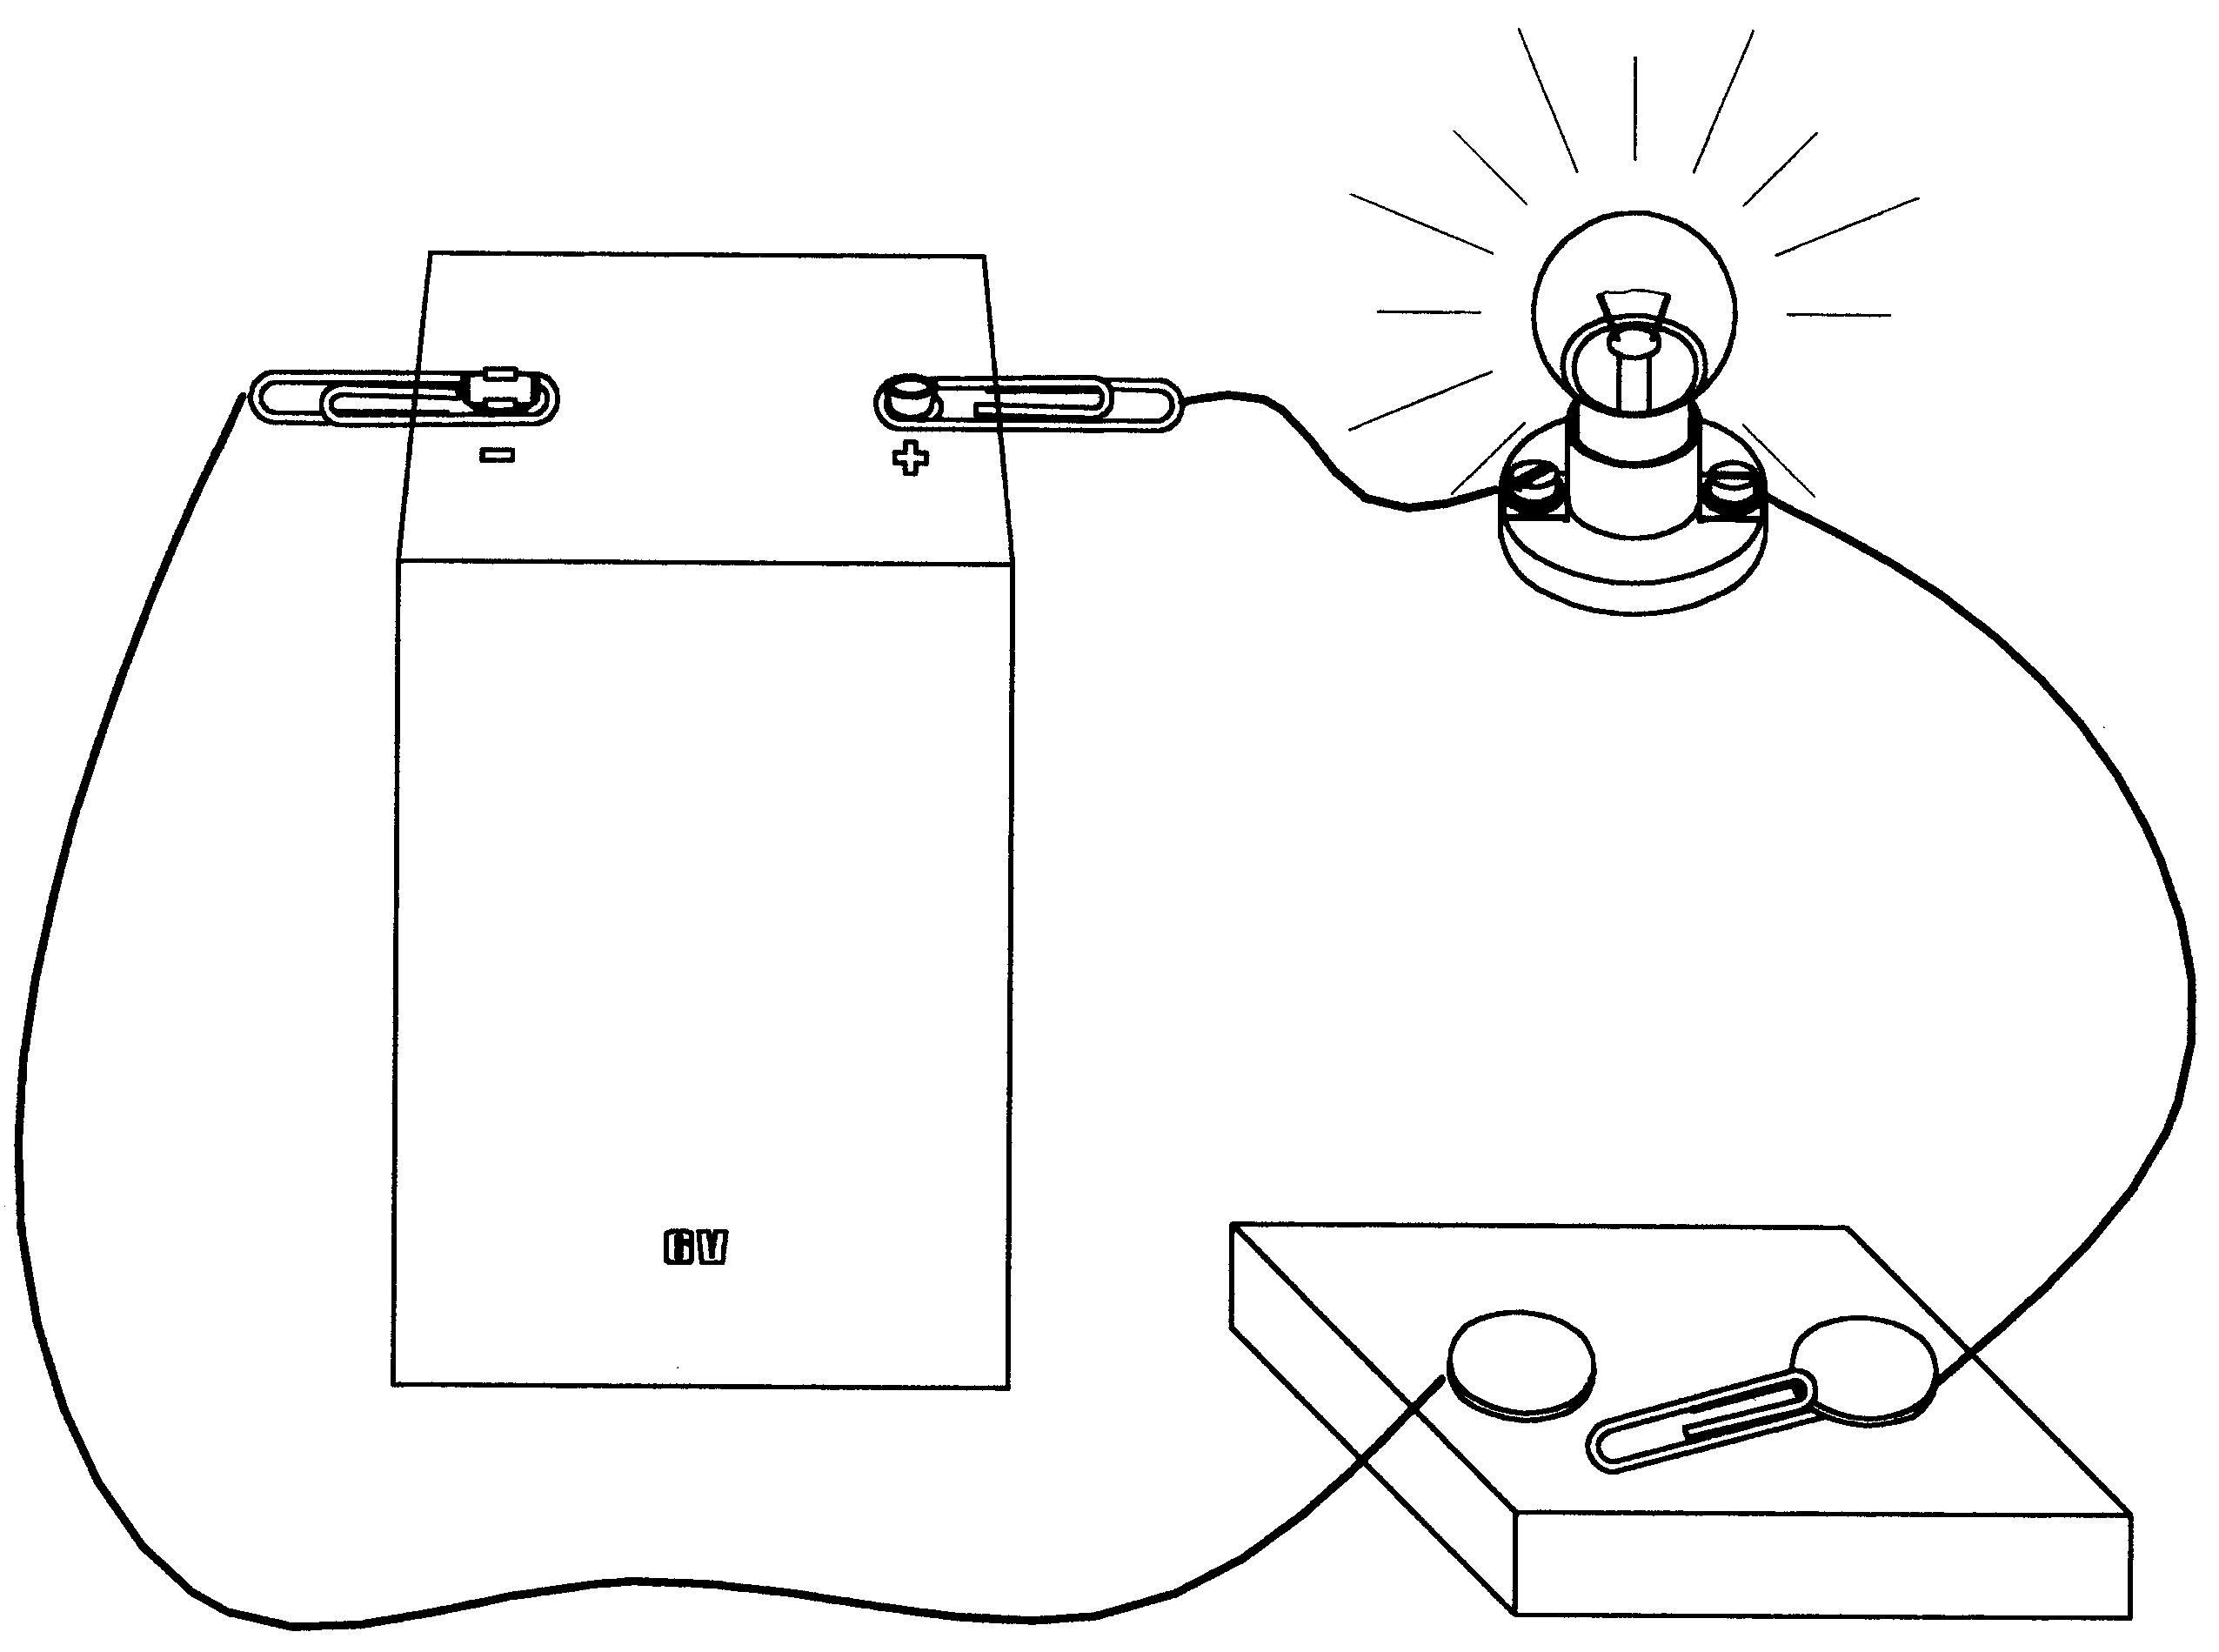 why a light bulb lights up technology grade 6 openstax cnxdraw a diagram to illustrate the circuit